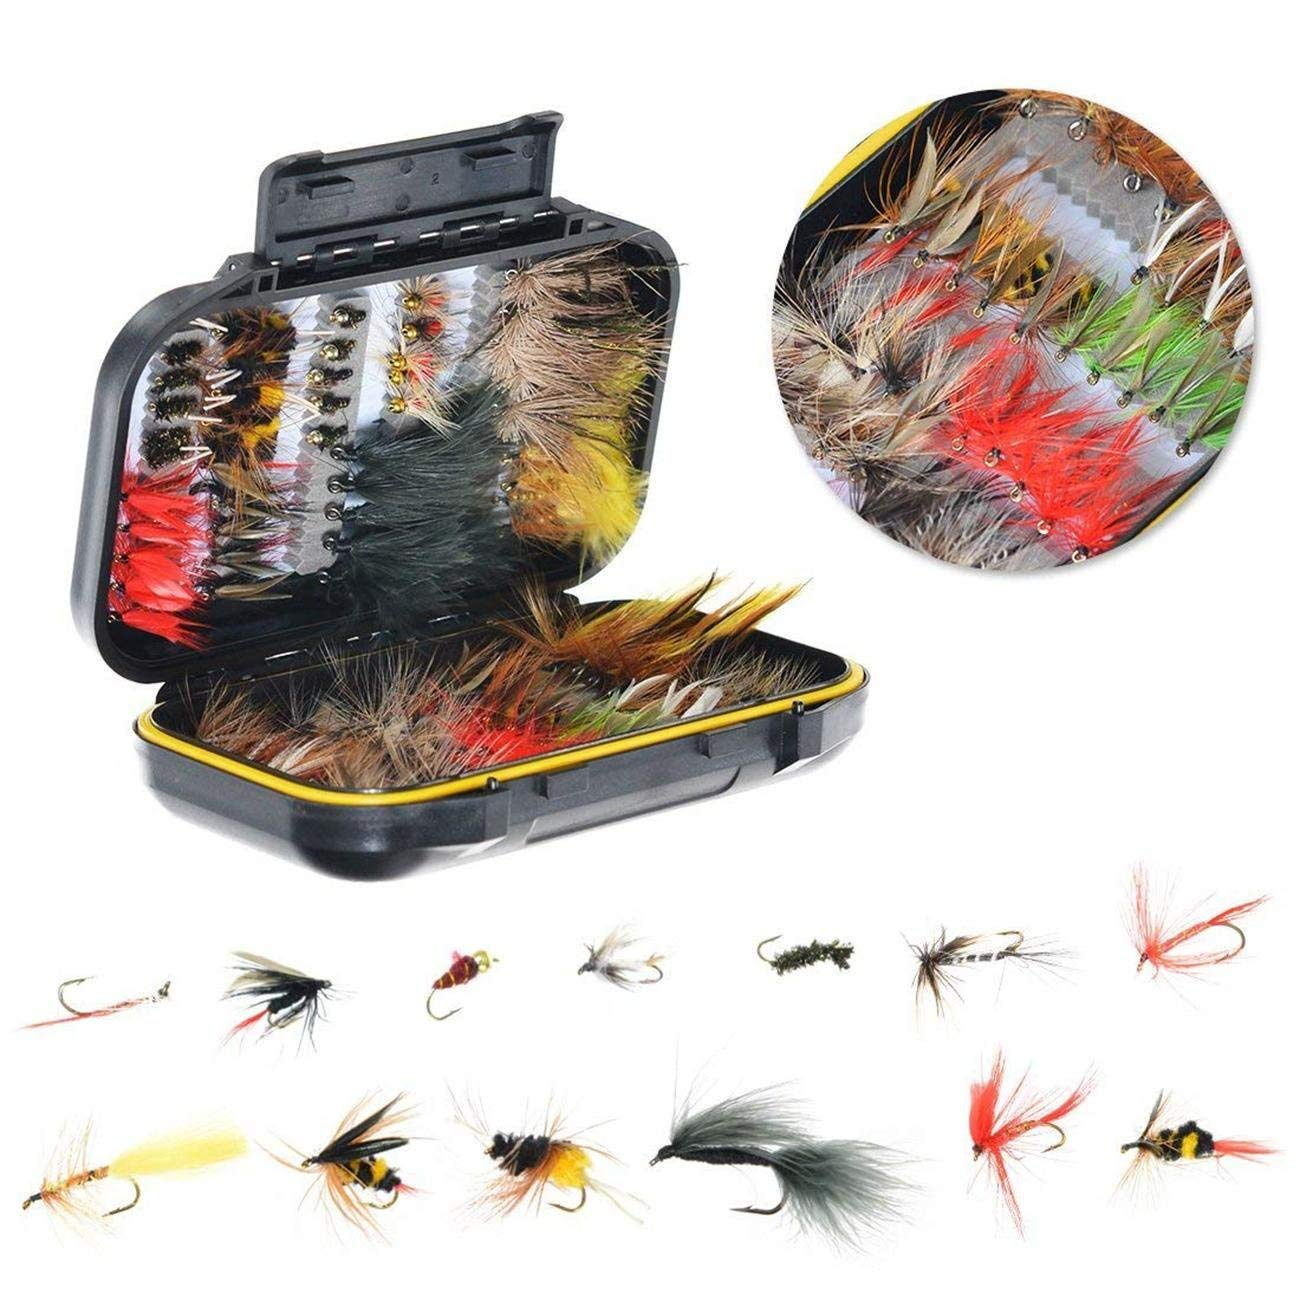 Dyna-Living Fly Fishing Flies Kit -120pcs Handmade Fly Fishing Lures - Dry/Wet Flies,Streamer, Nymph, Emerger with Waterproof Fly Box